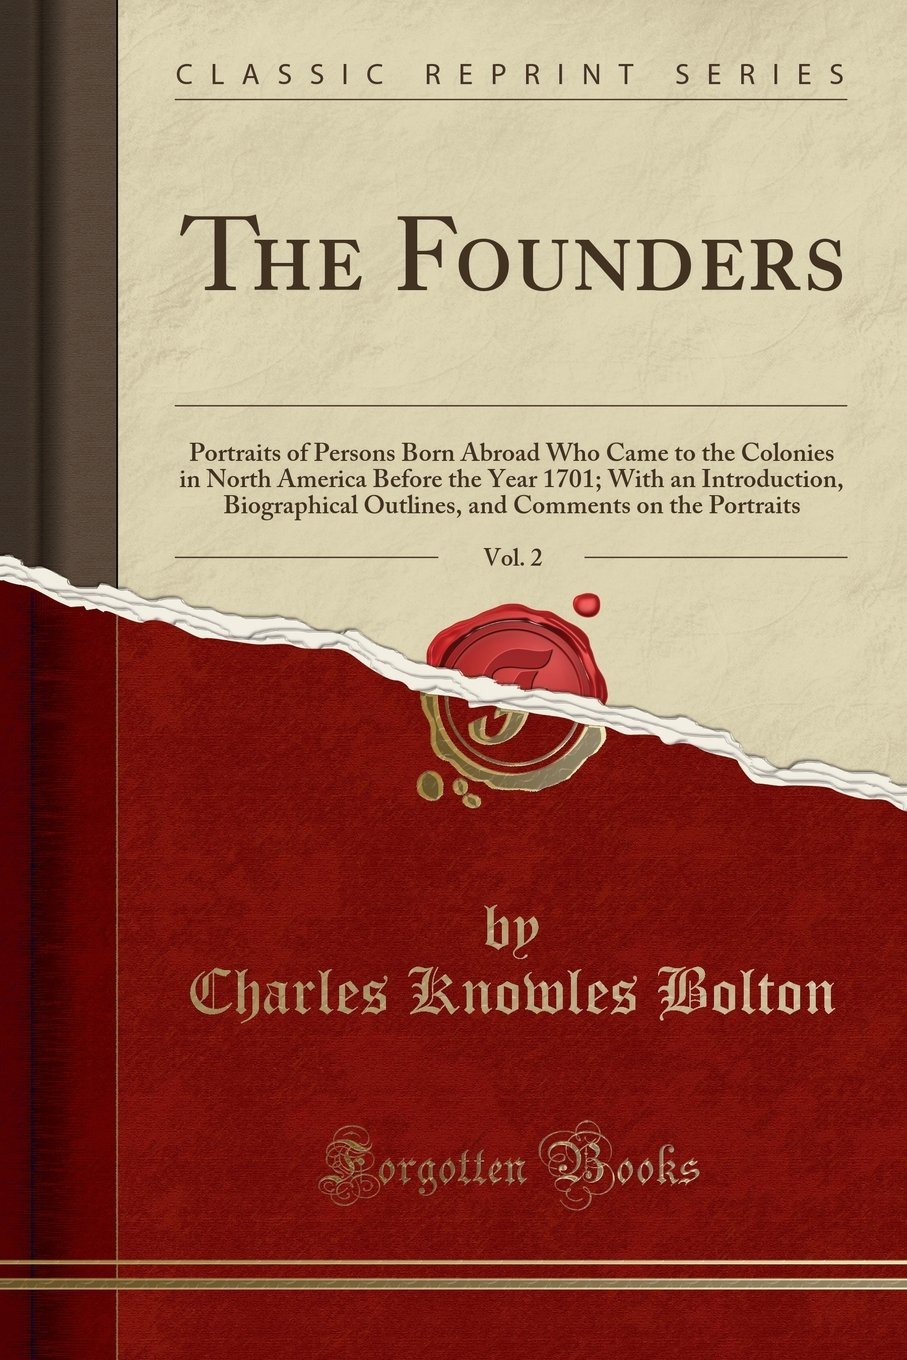 The Founders, Vol. 2: Portraits of Persons Born Abroad Who Came to the Colonies in North America Before the Year 1701; With an Introduction, ... Comments on the Portraits (Classic Reprint) pdf epub